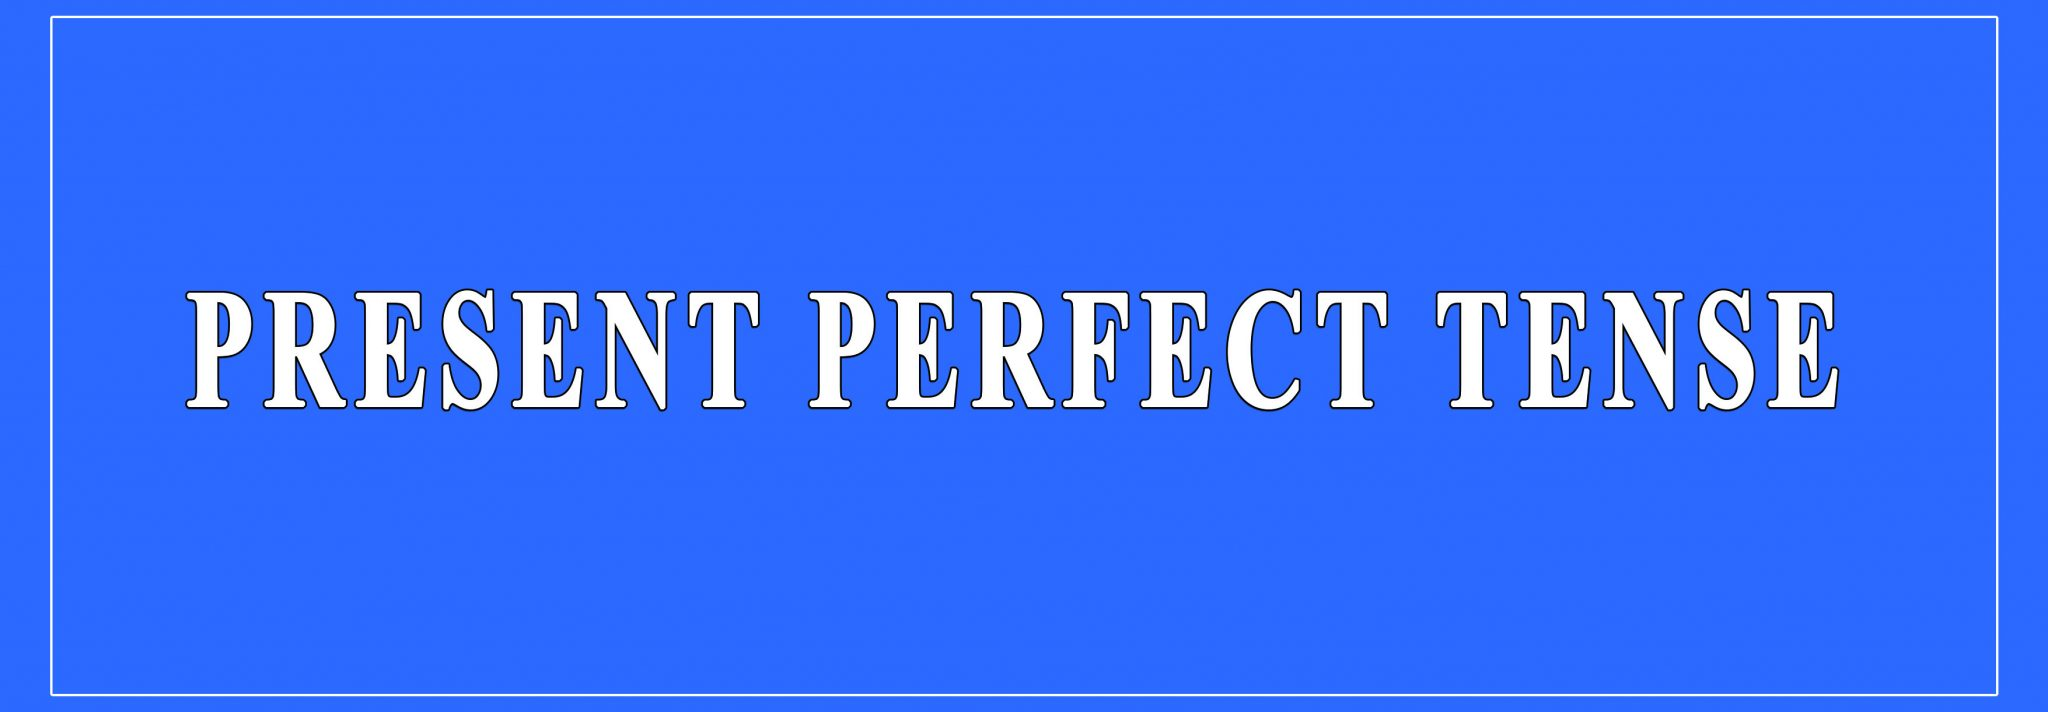 Present Perfect Tense Definition And Examples Structure Of Sentences